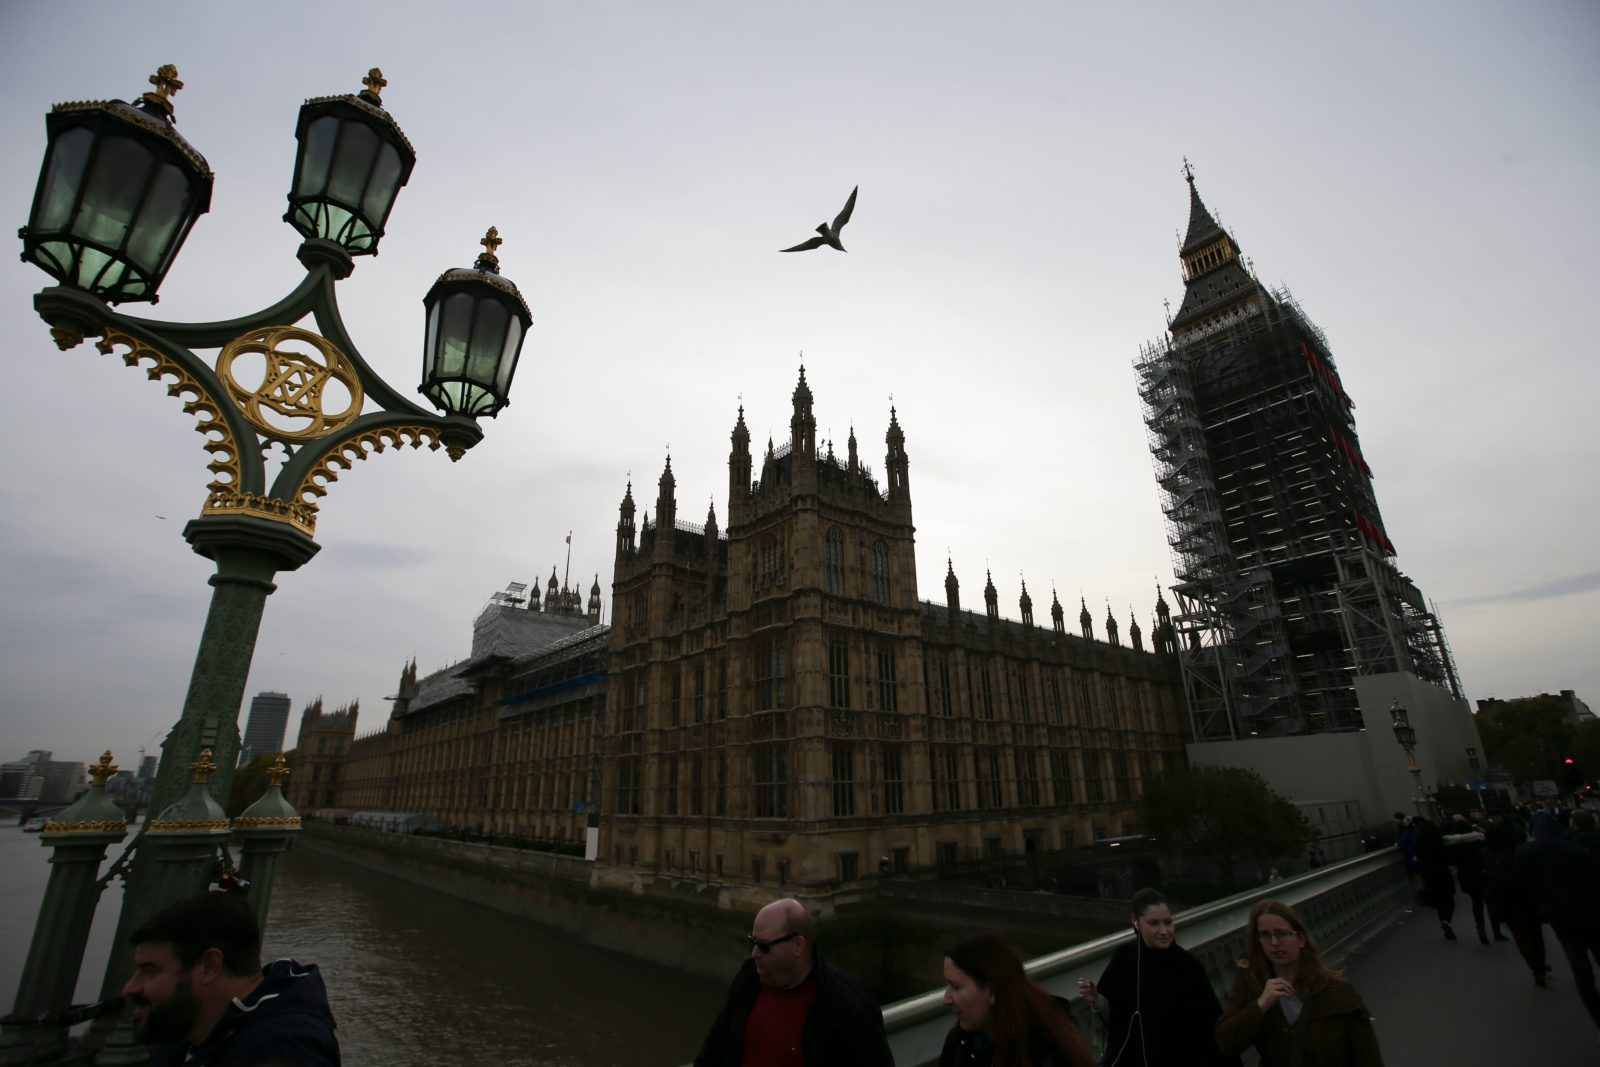 "The Houses of Parliament are seen in London on October 31, 2017. Prime Minister Theresa May came under pressure on Tuesday to take action against alleged sex pests in her own cabinet amid swirling rumours in Westminster about inappropriate behaviour by several lawmakers. Defence Secretary Michael Fallon apologised for putting his hand on a female journalist's knee in 2002 and the cabinet is investigating another minister, Mark Garnier, who asked his now former aide to buy him sex toys and called her ""sugar tits"". British media have reported on the existence of a list of sexual allegations about around 40 Conservative MPs including six ministers that was apparently compiled by disgruntled former employees. / AFP PHOTO / Daniel LEAL-OLIVAS / The erroneous mention[s] appearing in the metadata of this photo by Daniel LEAL-OLIVAS has been modified in AFP systems in the following manner: [The Houses of Parliament are seen in London on October 31, 2017] instead of [Chancellor of the Exchequor Philip Hammond leaves his office in Downing Street...]. Please immediately remove the erroneous mention[s] from all your online services and delete it (them) from your servers. If you have been authorized by AFP to distribute it (them) to third parties, please ensure that the same actions are carried out by them. Failure to promptly comply with these instructions will entail liability on your part for any continued or post notification usage. Therefore we thank you very much for all your attention and prompt action. We are sorry for the inconvenience this notification may cause and remain at your disposal for any further information you may require. (Photo credit should read DANIEL LEAL-OLIVAS/AFP/Getty Images)"